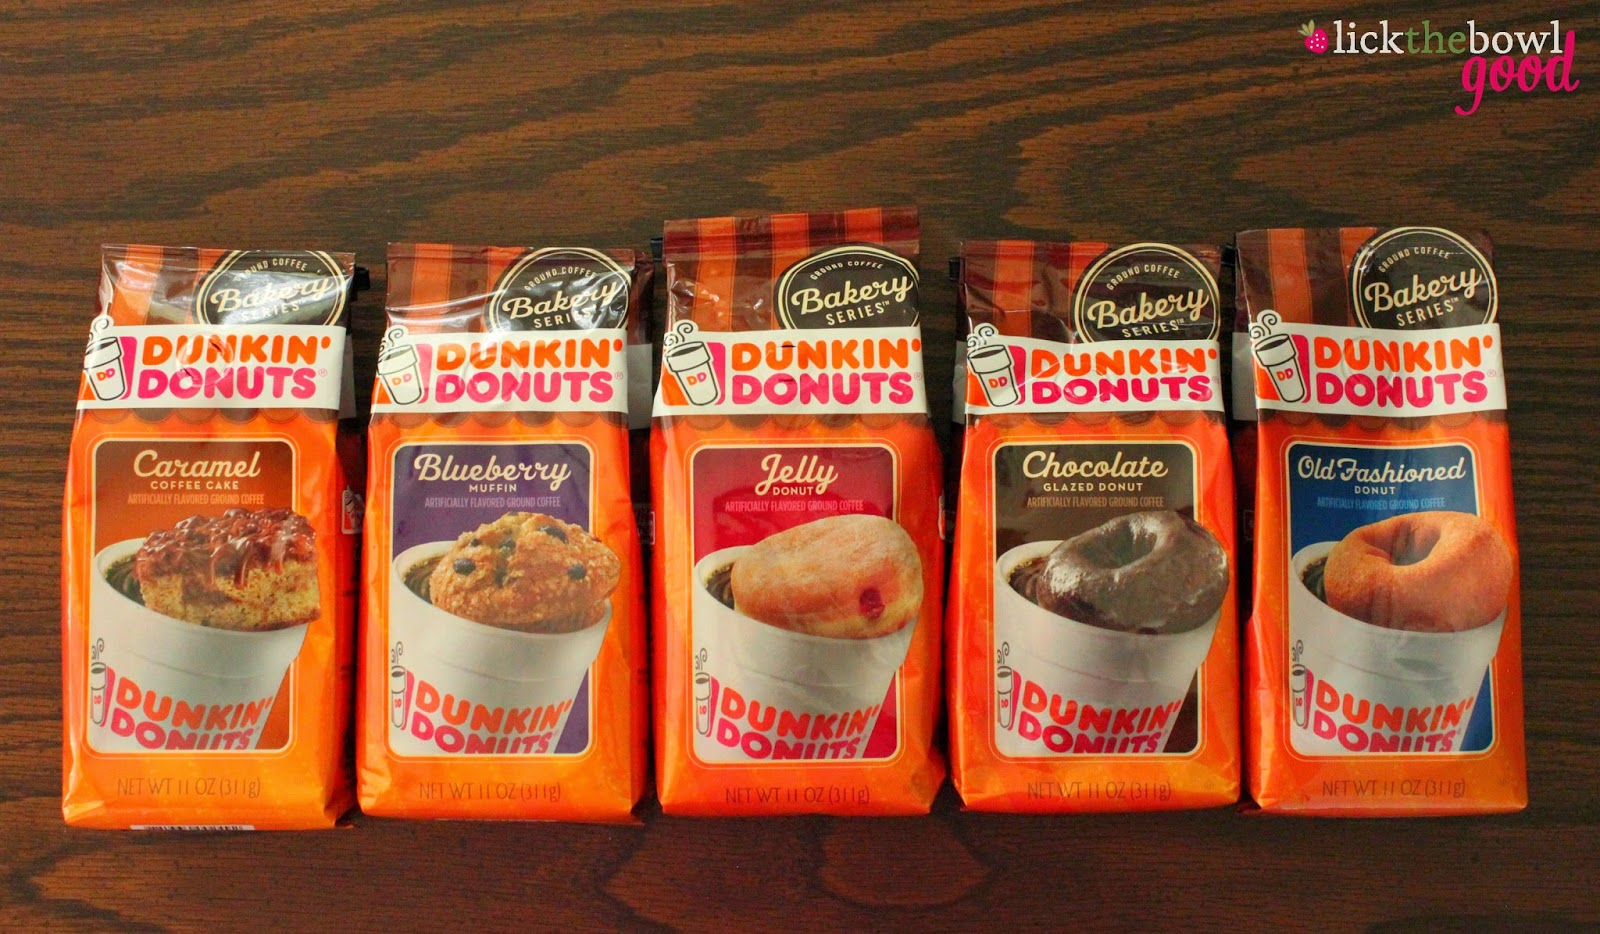 Lick The Bowl Good Dunkin Donuts Coffee Giveaway Closed